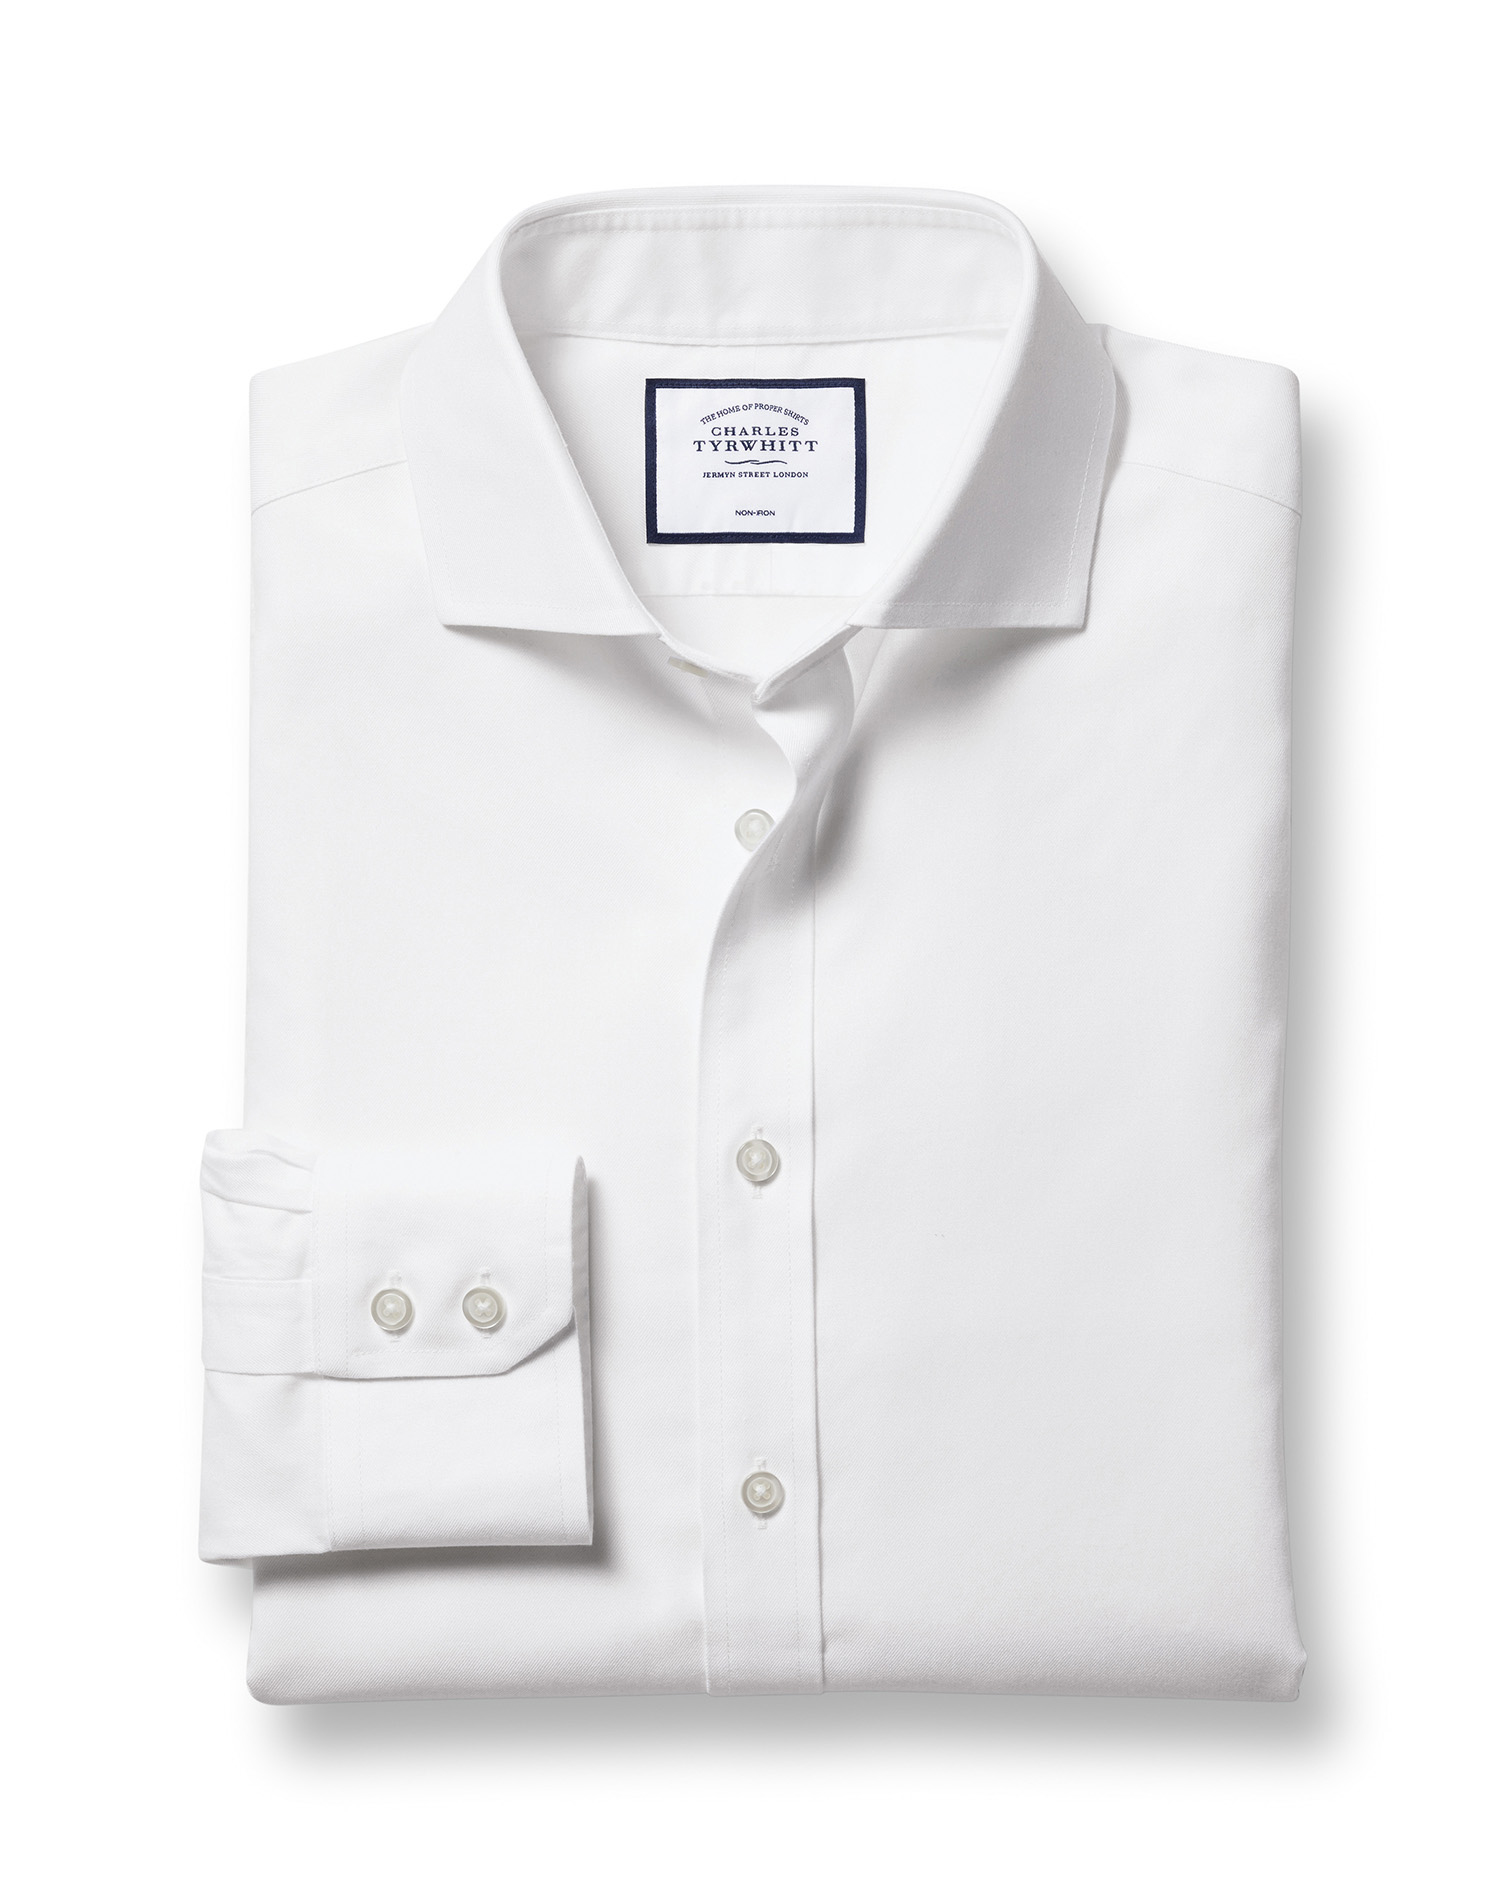 Classic Fit White Non-Iron Twill Cutaway Collar Cotton Formal Shirt Double Cuff Size 15/33 by Charle